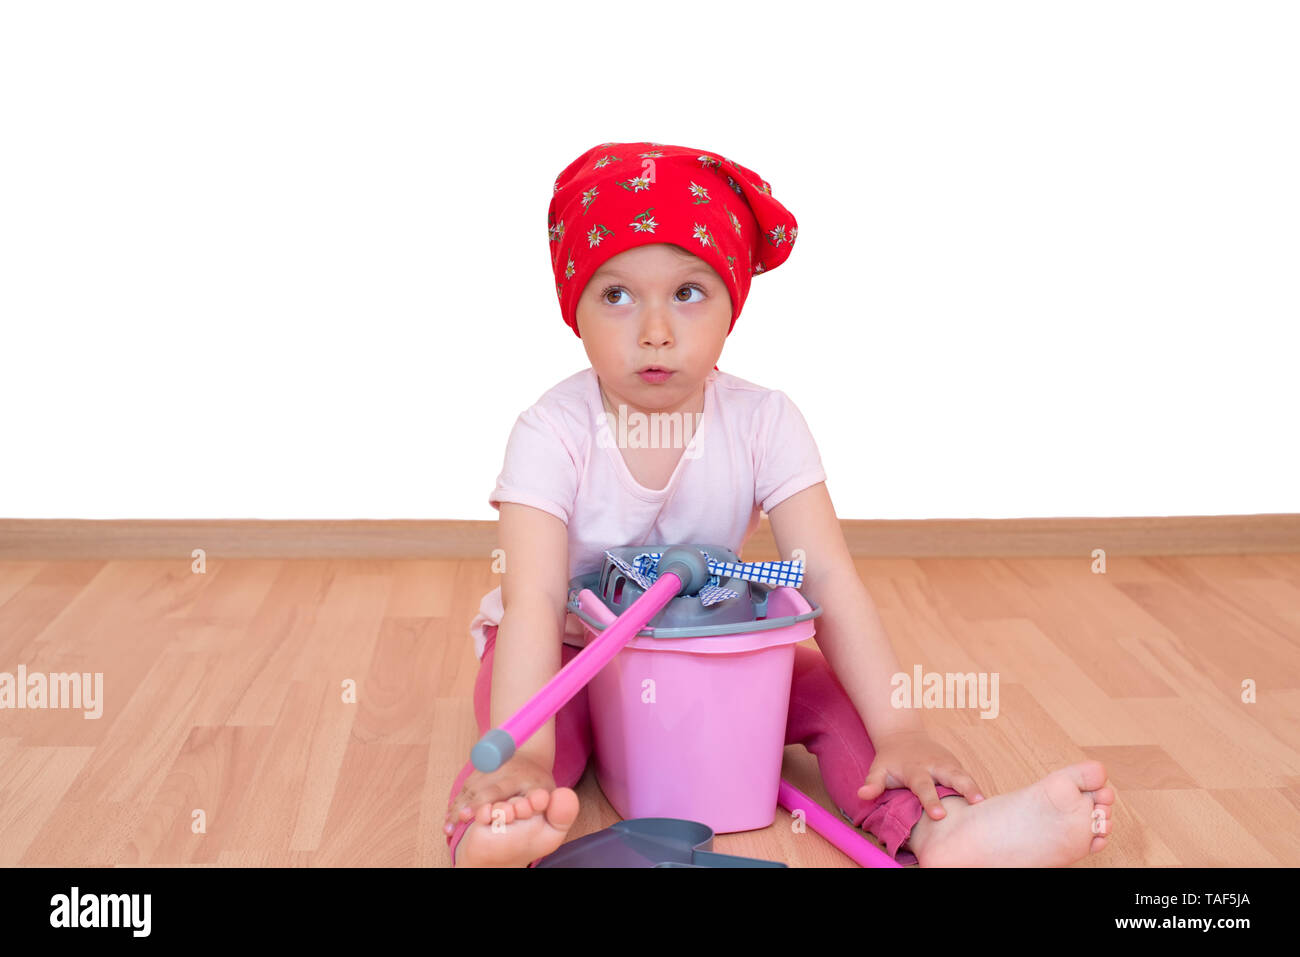 Barefoot little girl with mop and bucket sitting on the floor isolated - Stock Image